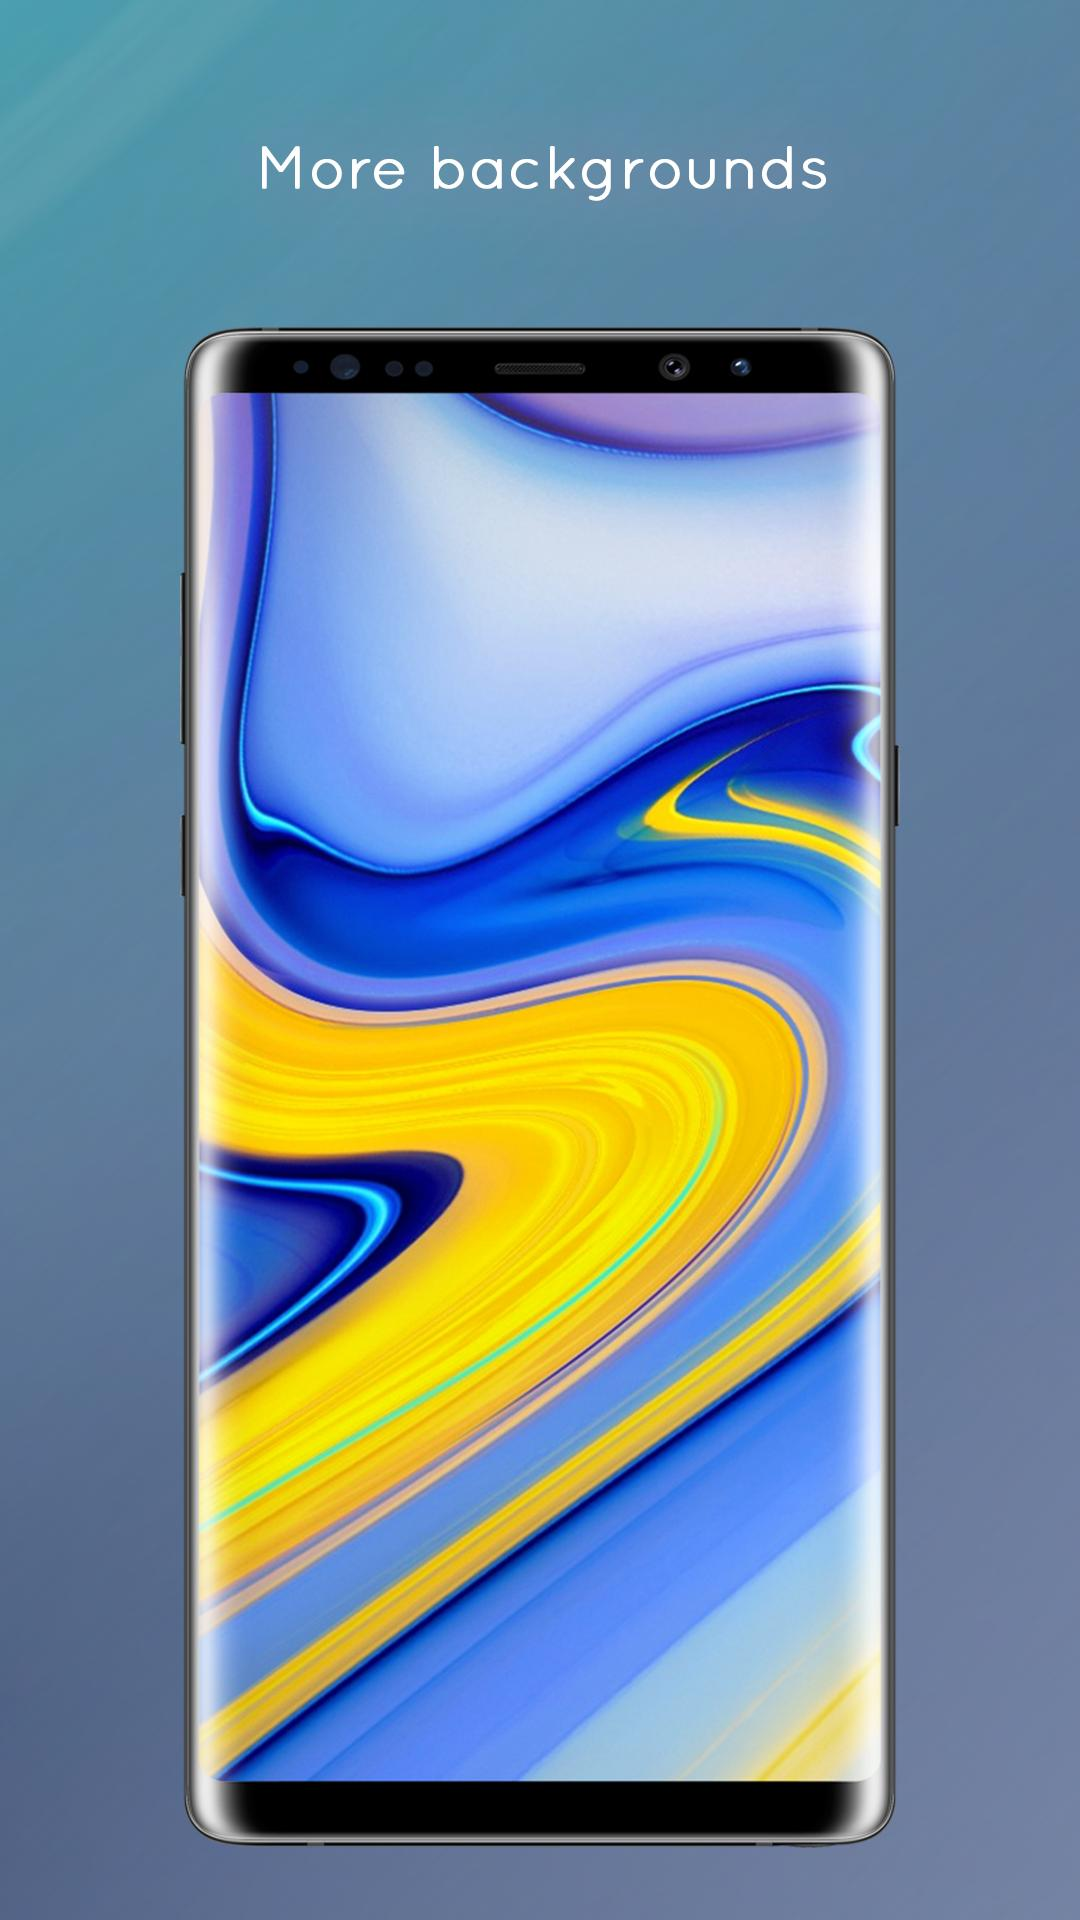 Galaxy Note 9 Wallpaper for Android - APK Download